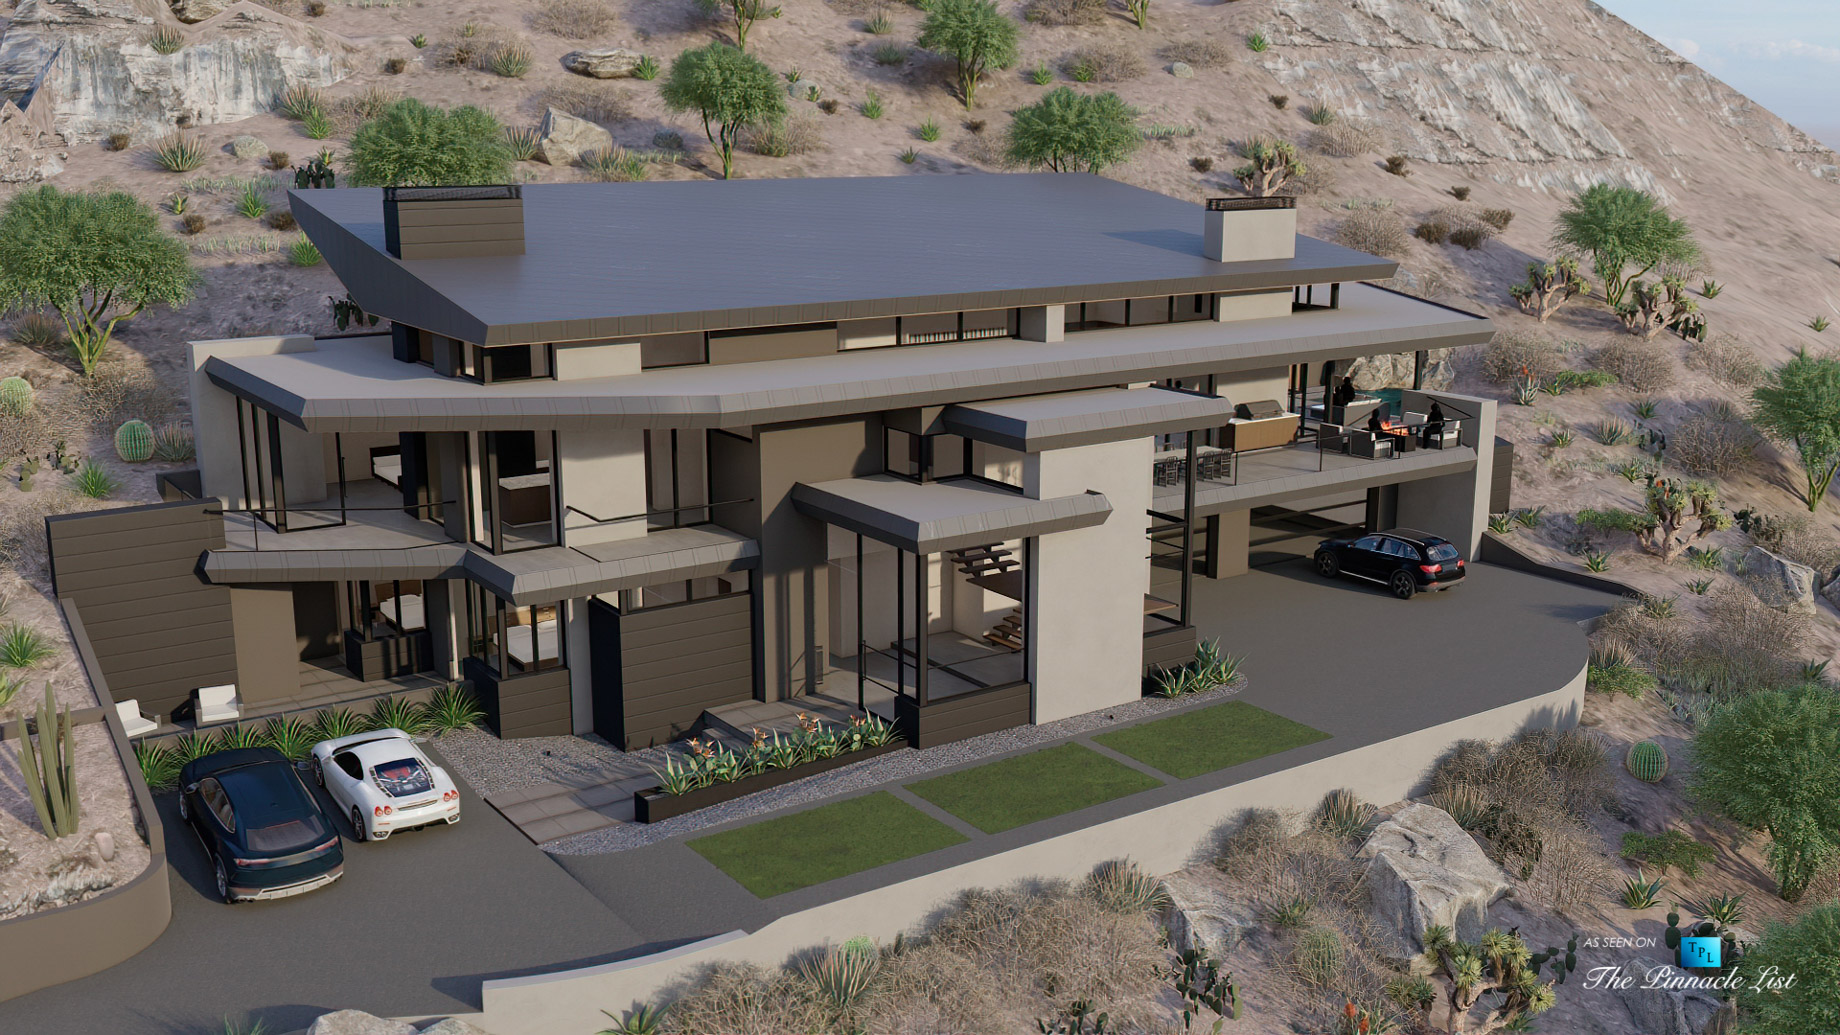 5221 E Cheney Dr, Paradise Valley, AZ, USA - Exterior Front - Luxury Real Estate - Modern Hillside Home